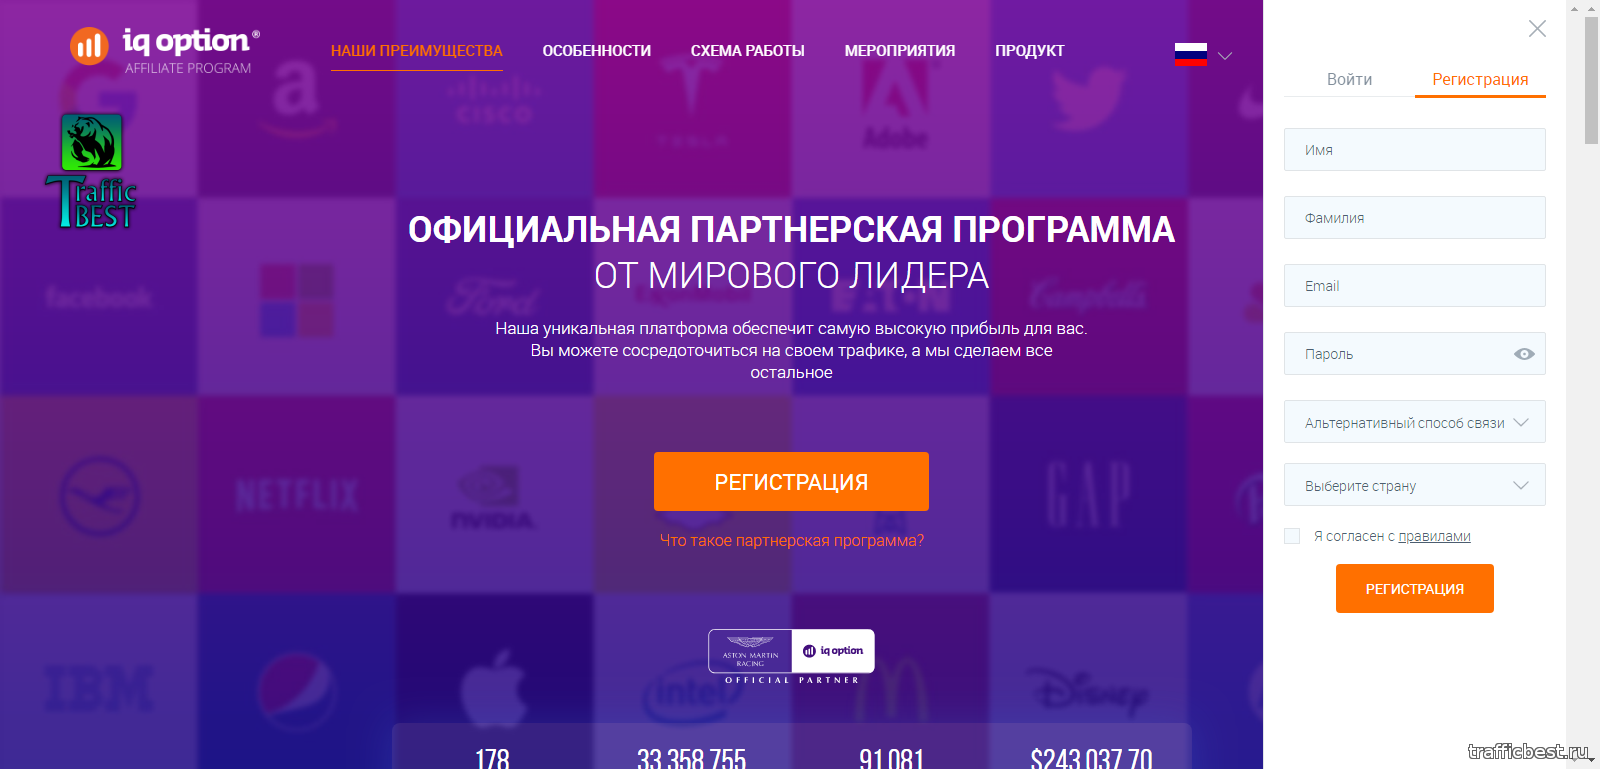 Партнерская программа брокера бинарных опционов IQ Option